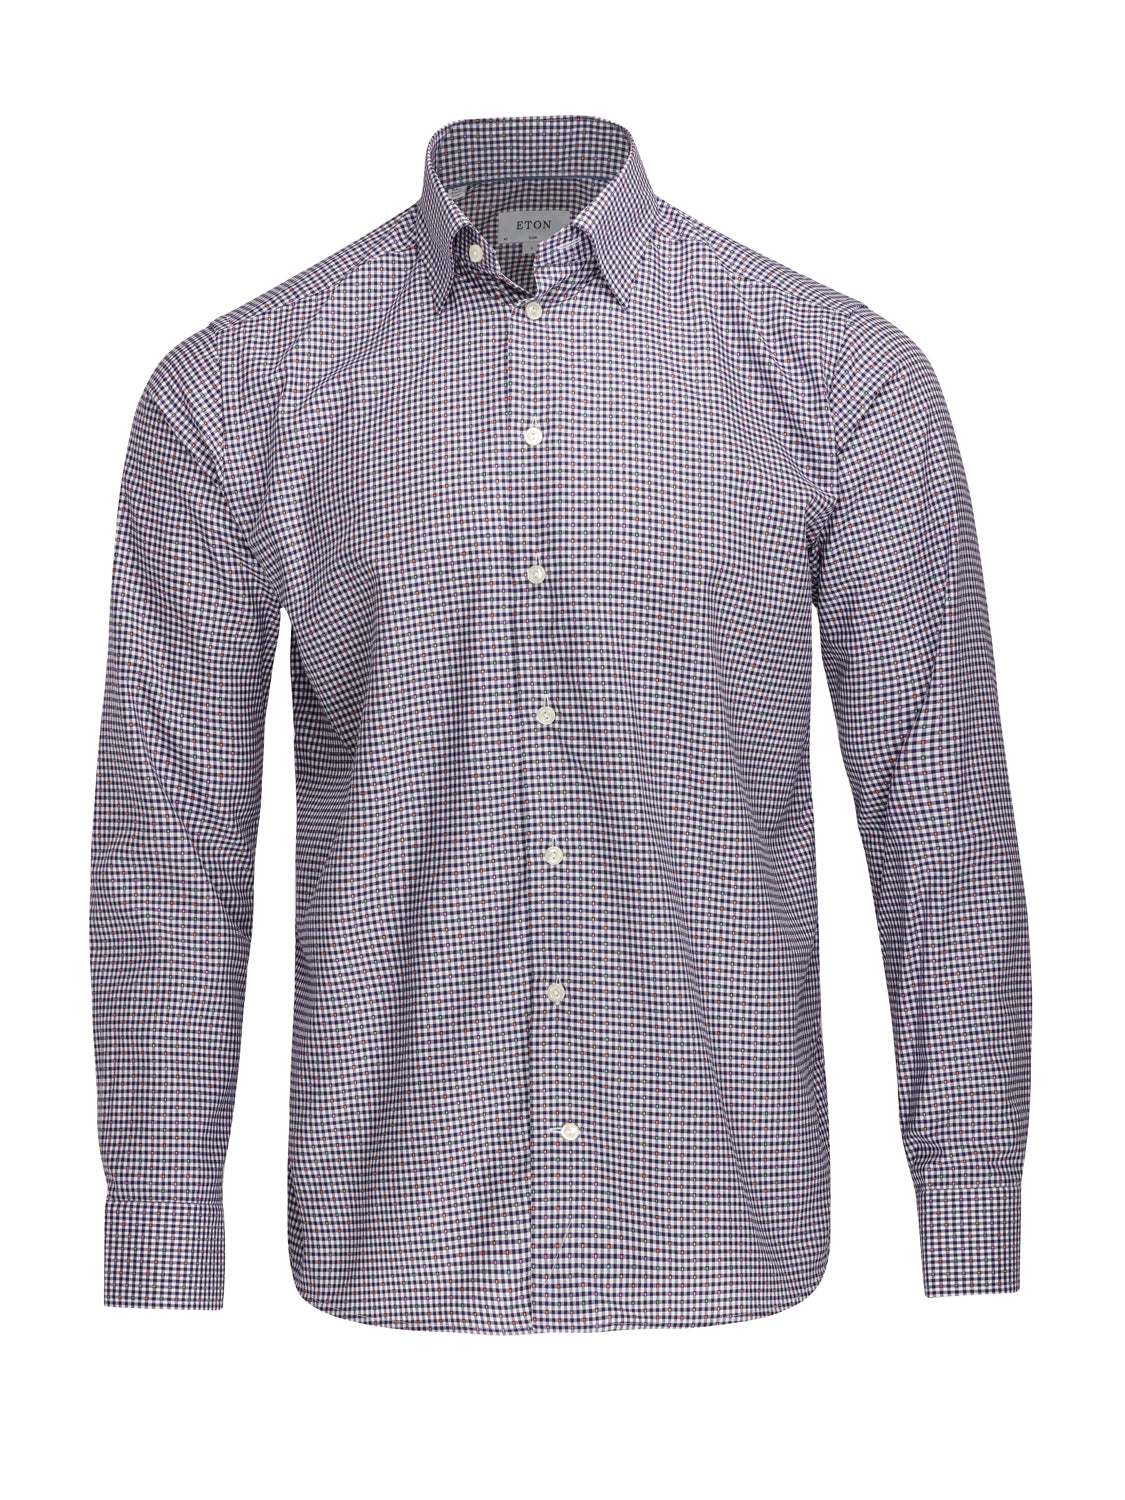 ETON Rainbow Check Shirt (Blue) - Union 22